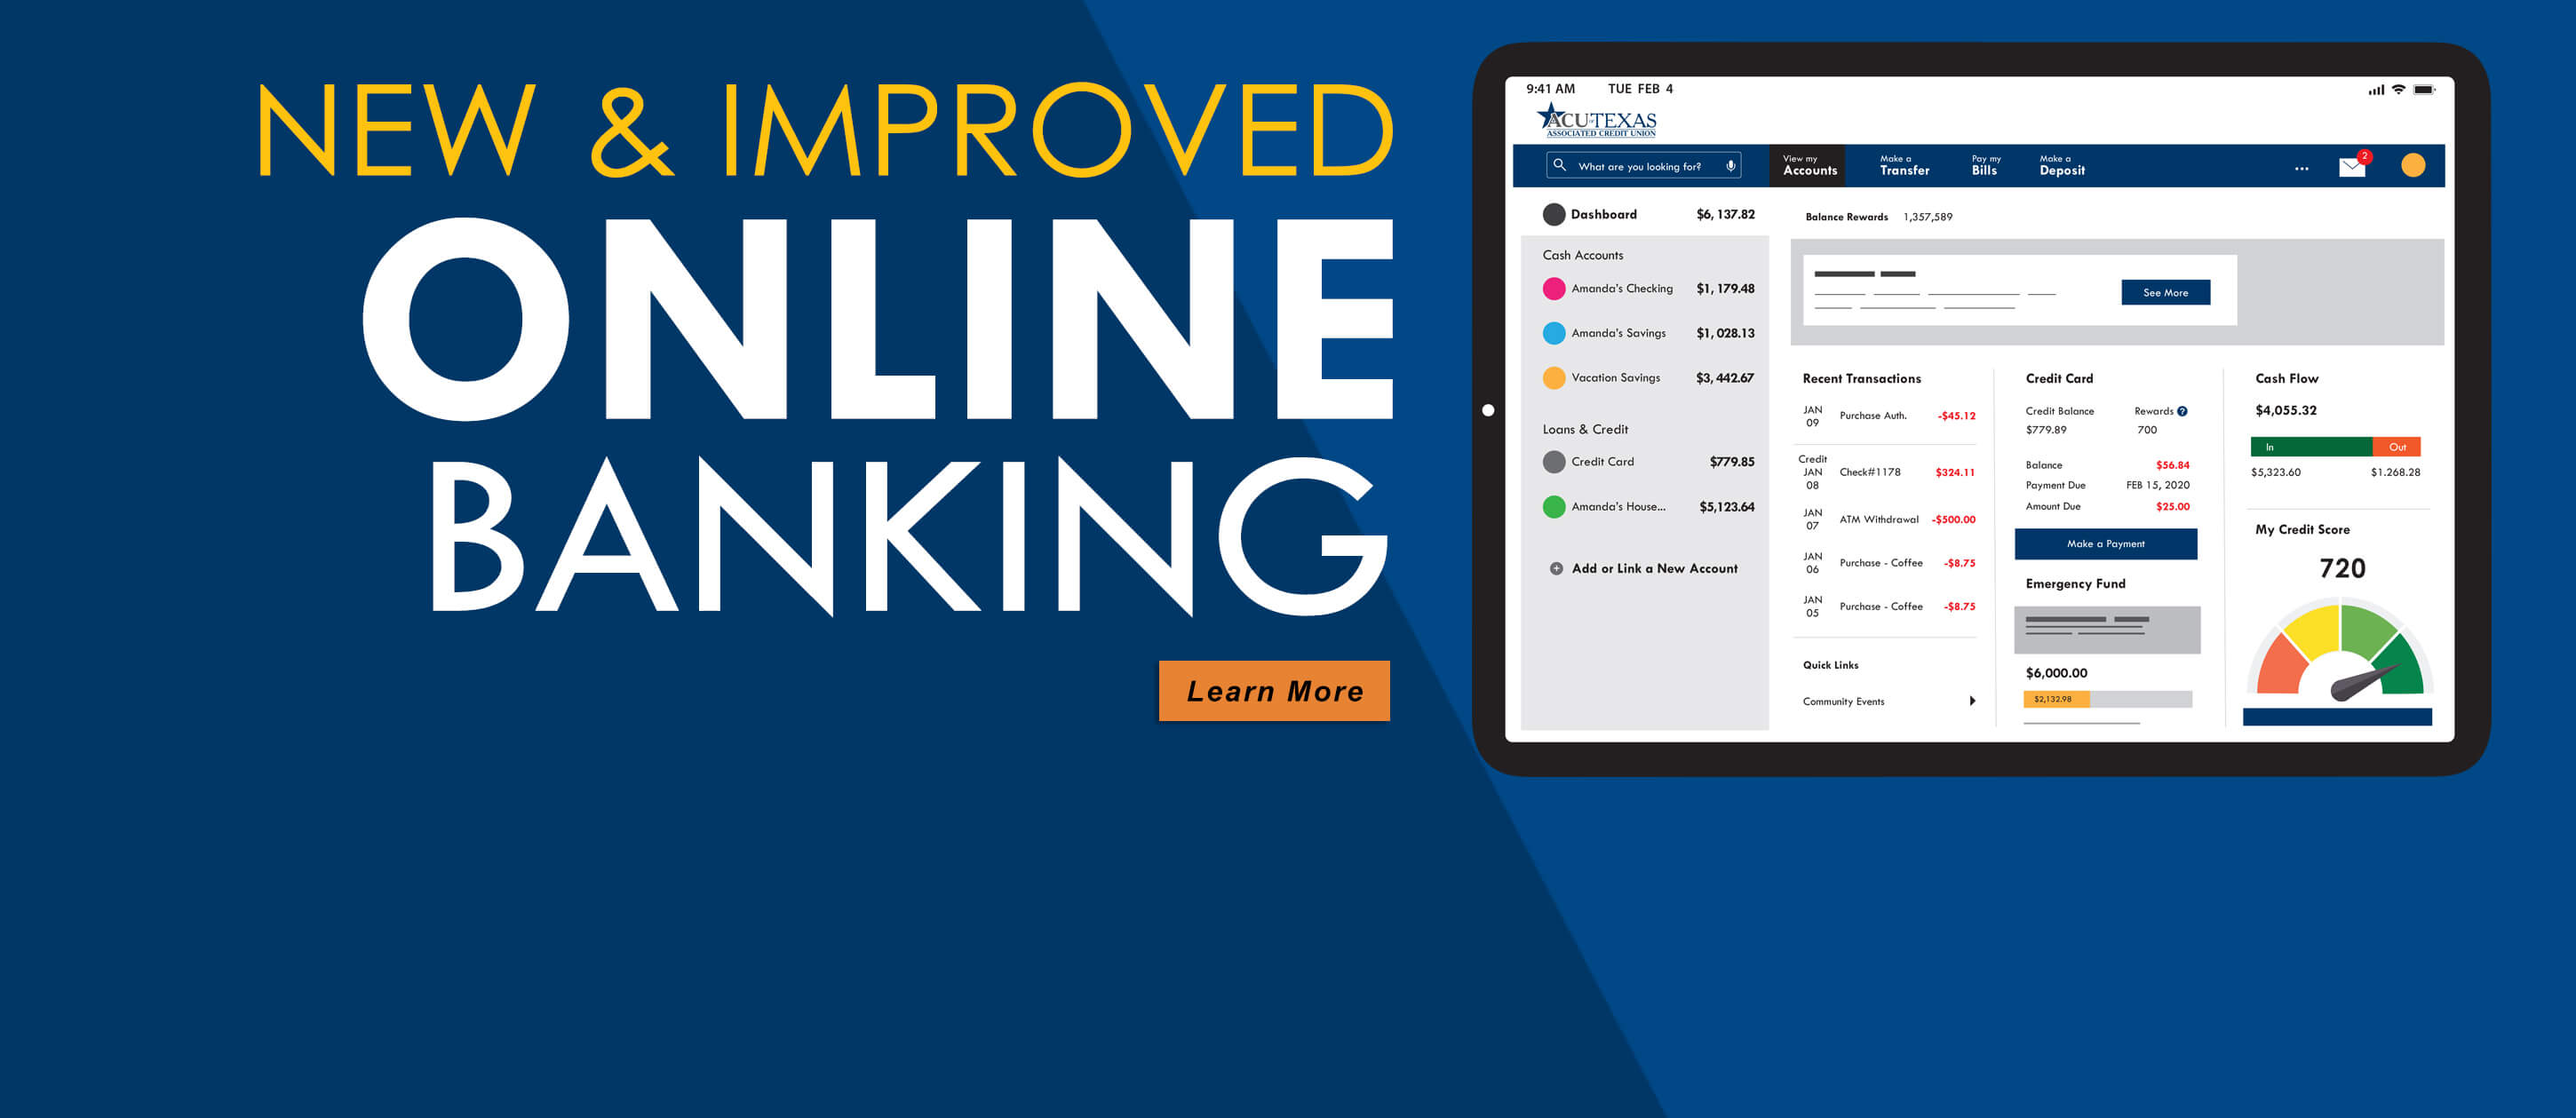 New and improved online banking is here!